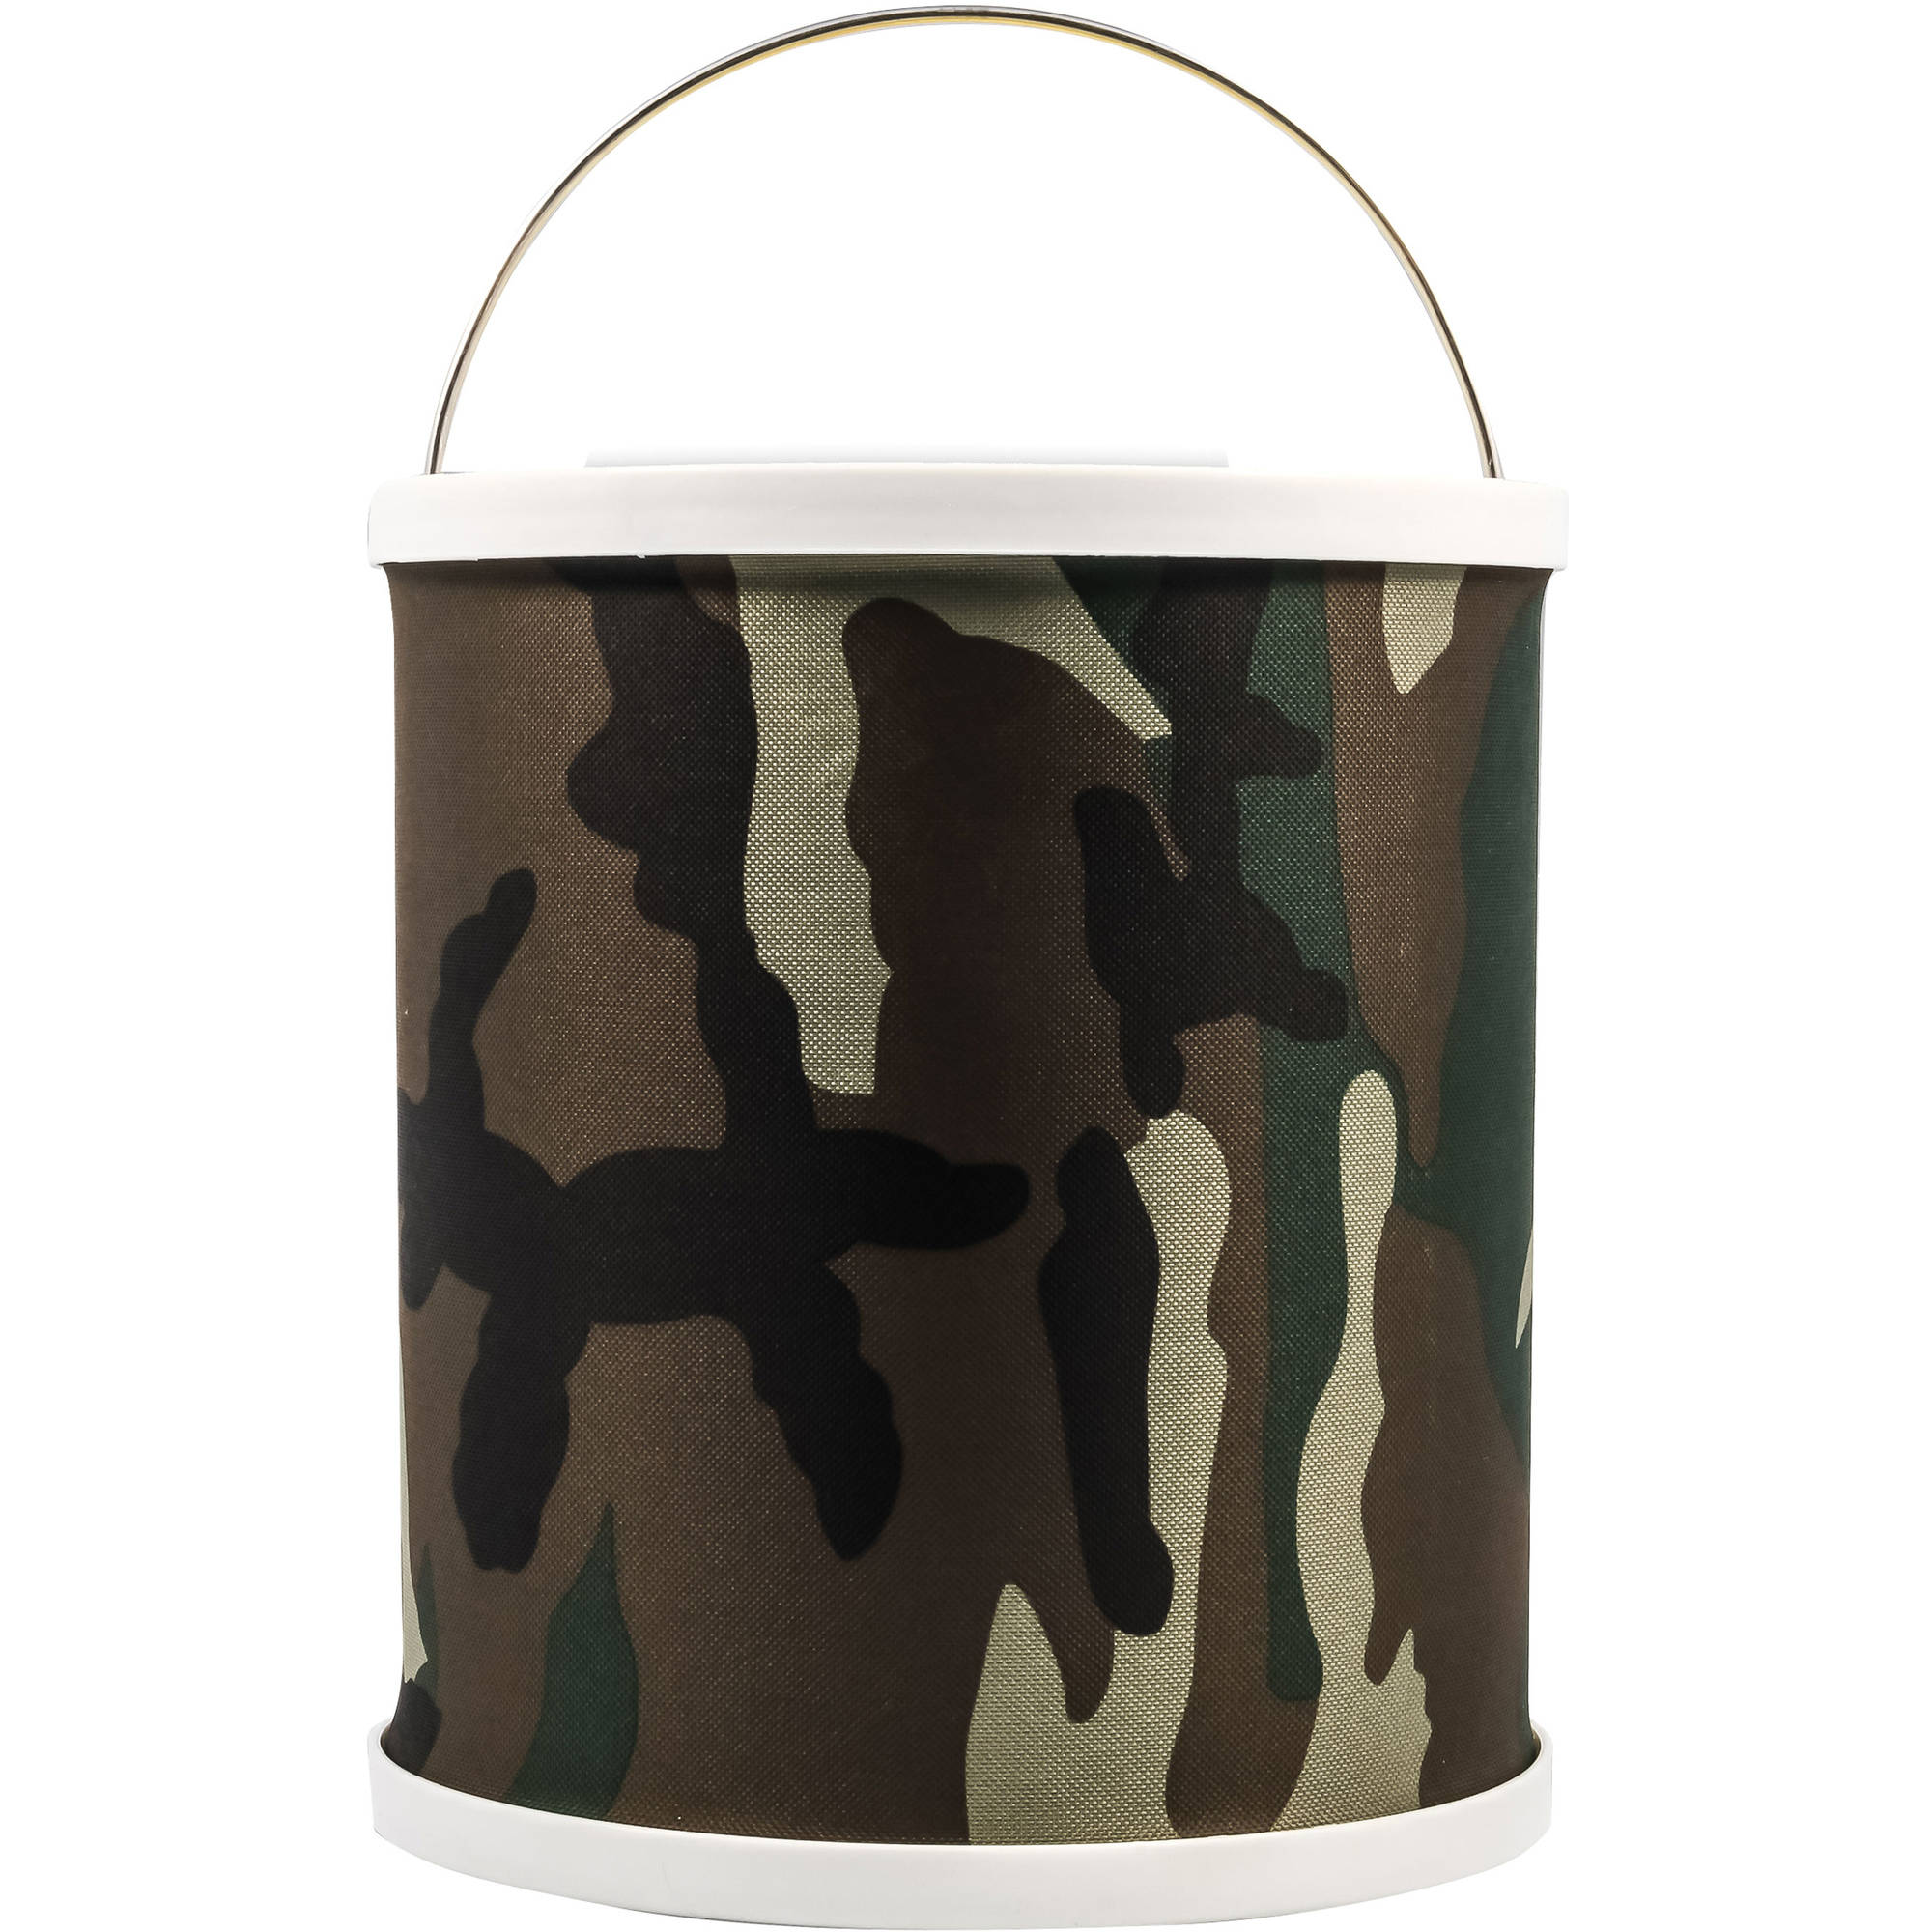 Camco 42994 Collapsible Camo Bucket by Camco